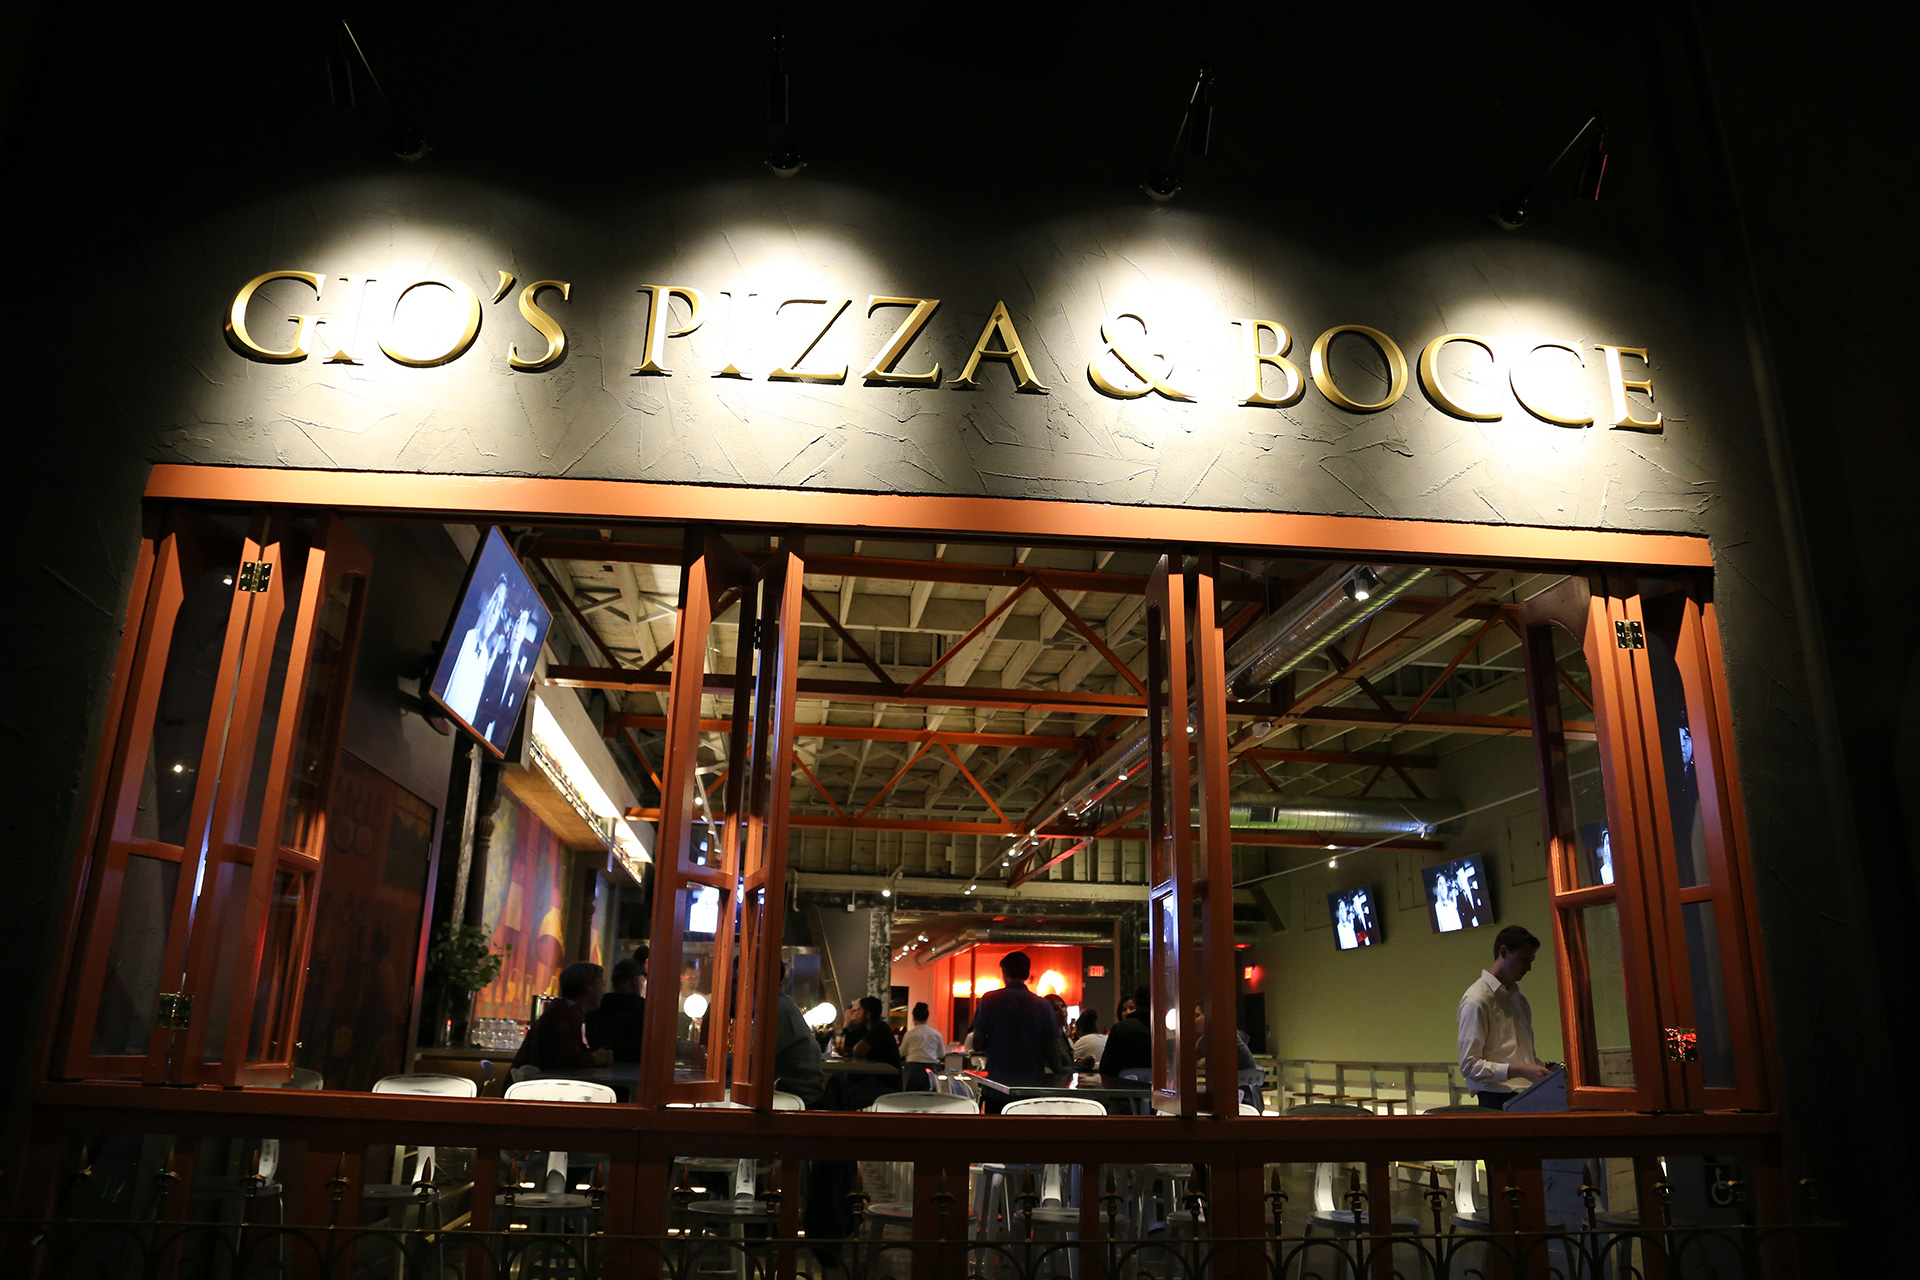 Gio's Pizza & Bocce exterior at night.